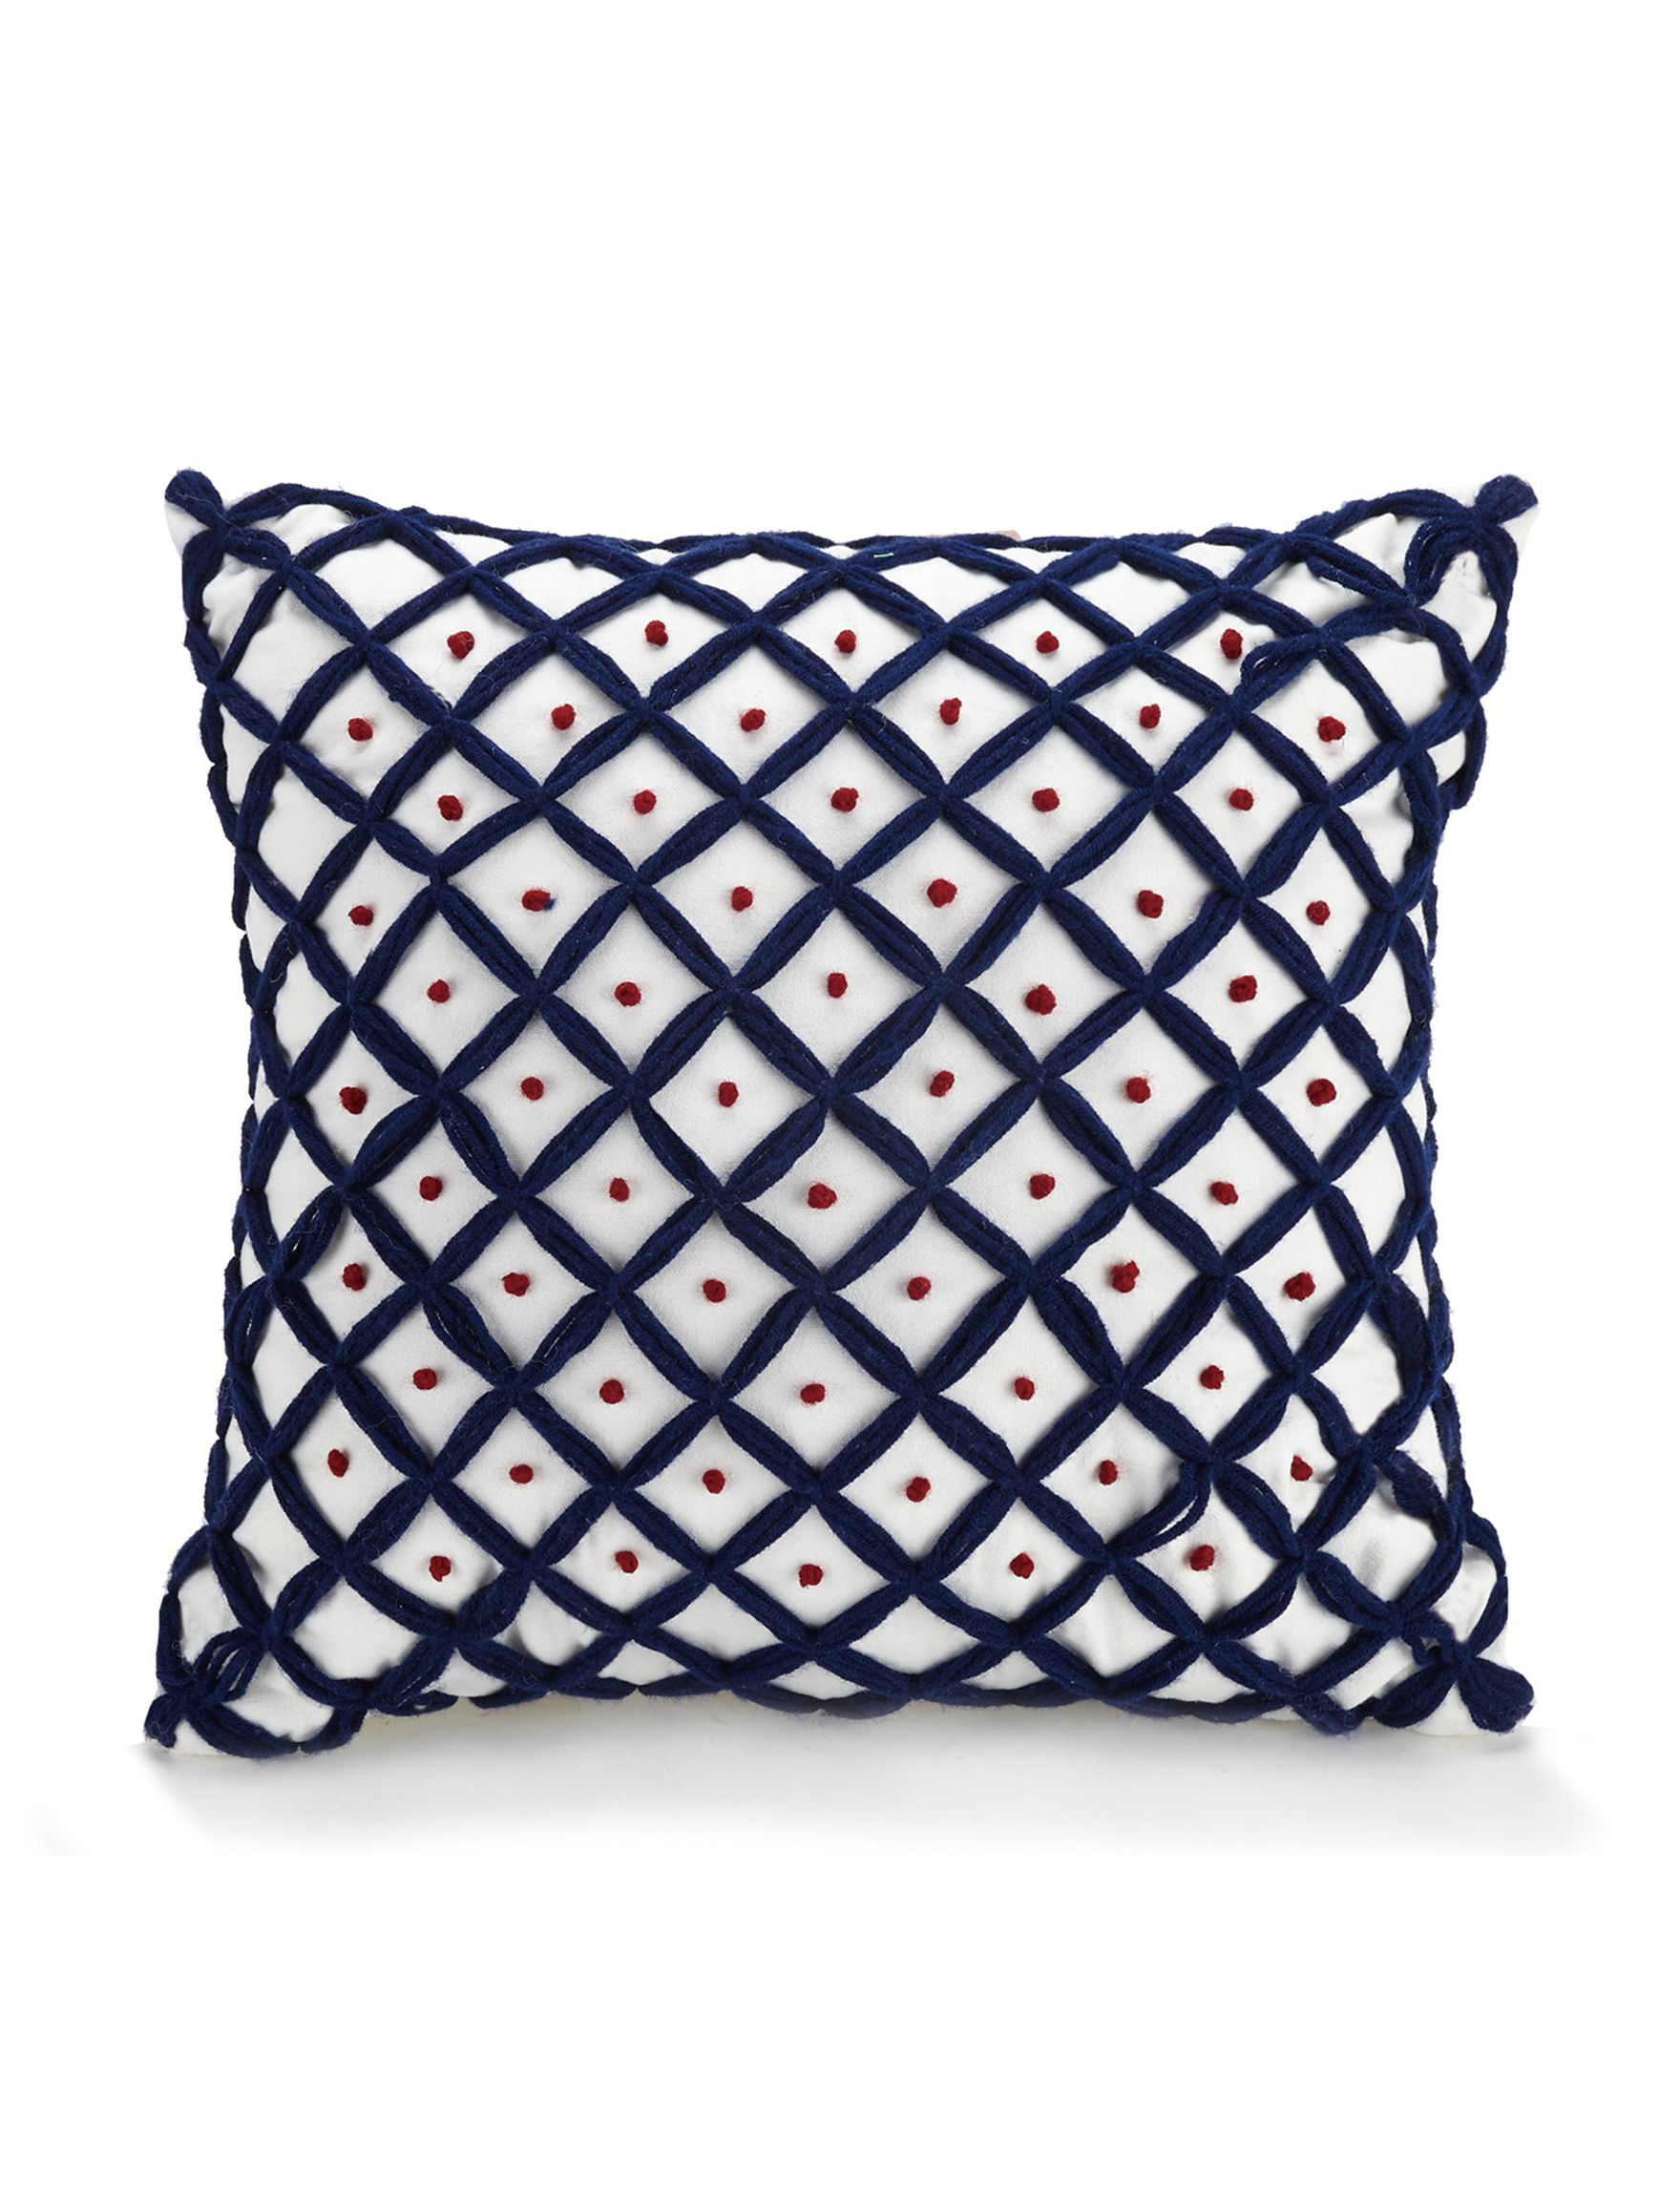 Jessica Simpson Blue Decorative Pillows